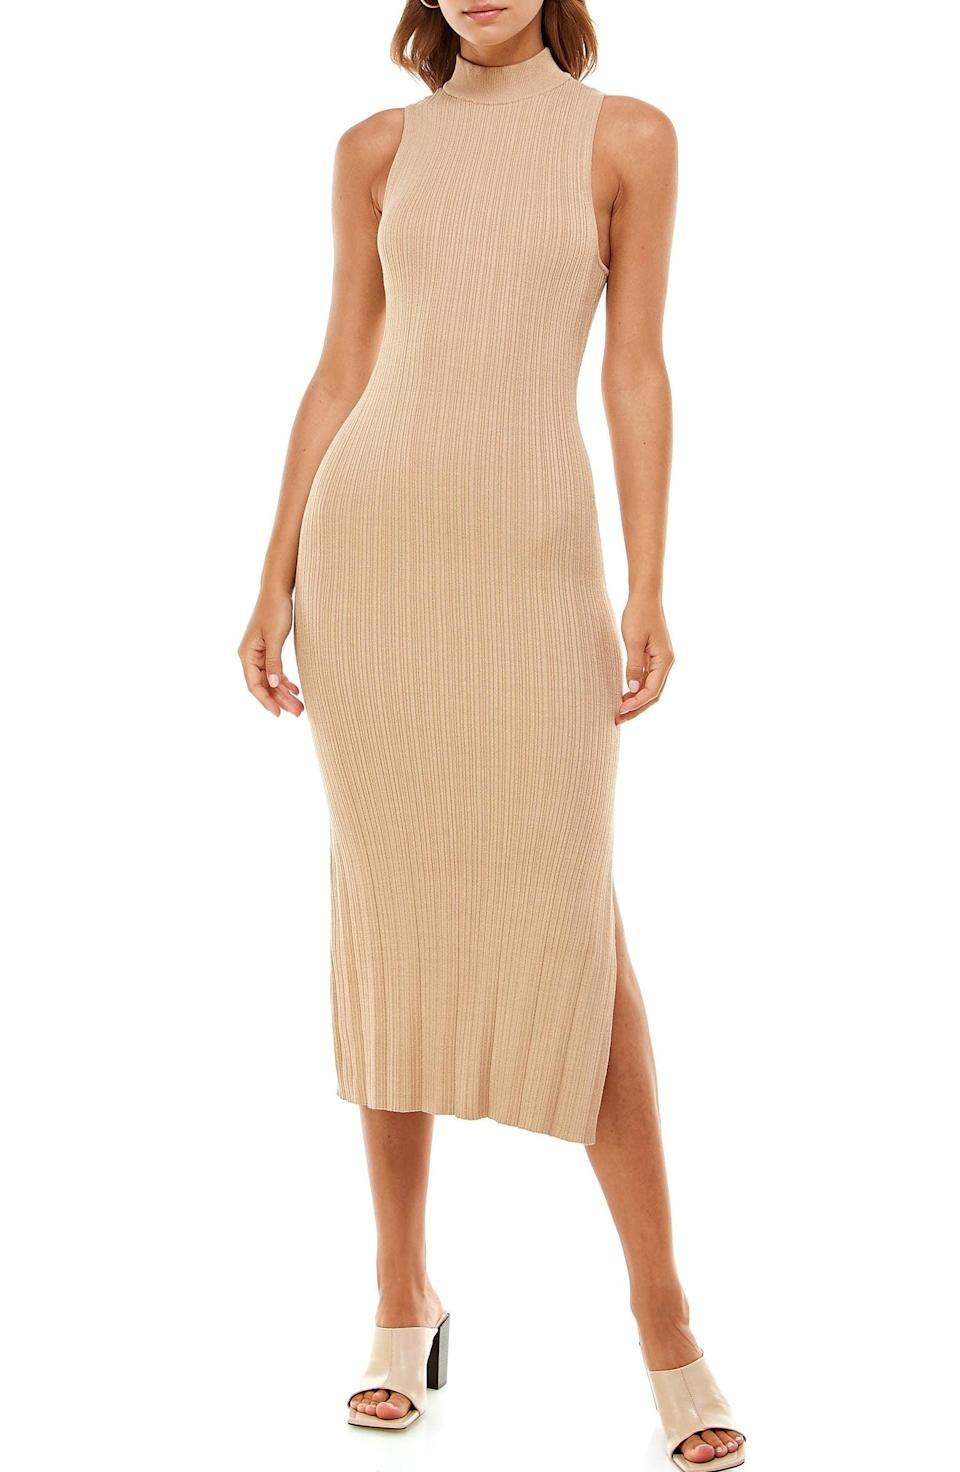 <p>This <span>WAYF Cynthia Mock Neck Tank Mididress</span> ($69) has an understated elegance that makes it irresistible. From the figure-sculpting silhouette to the side slid, it's a dress designed to make an impression.</p>